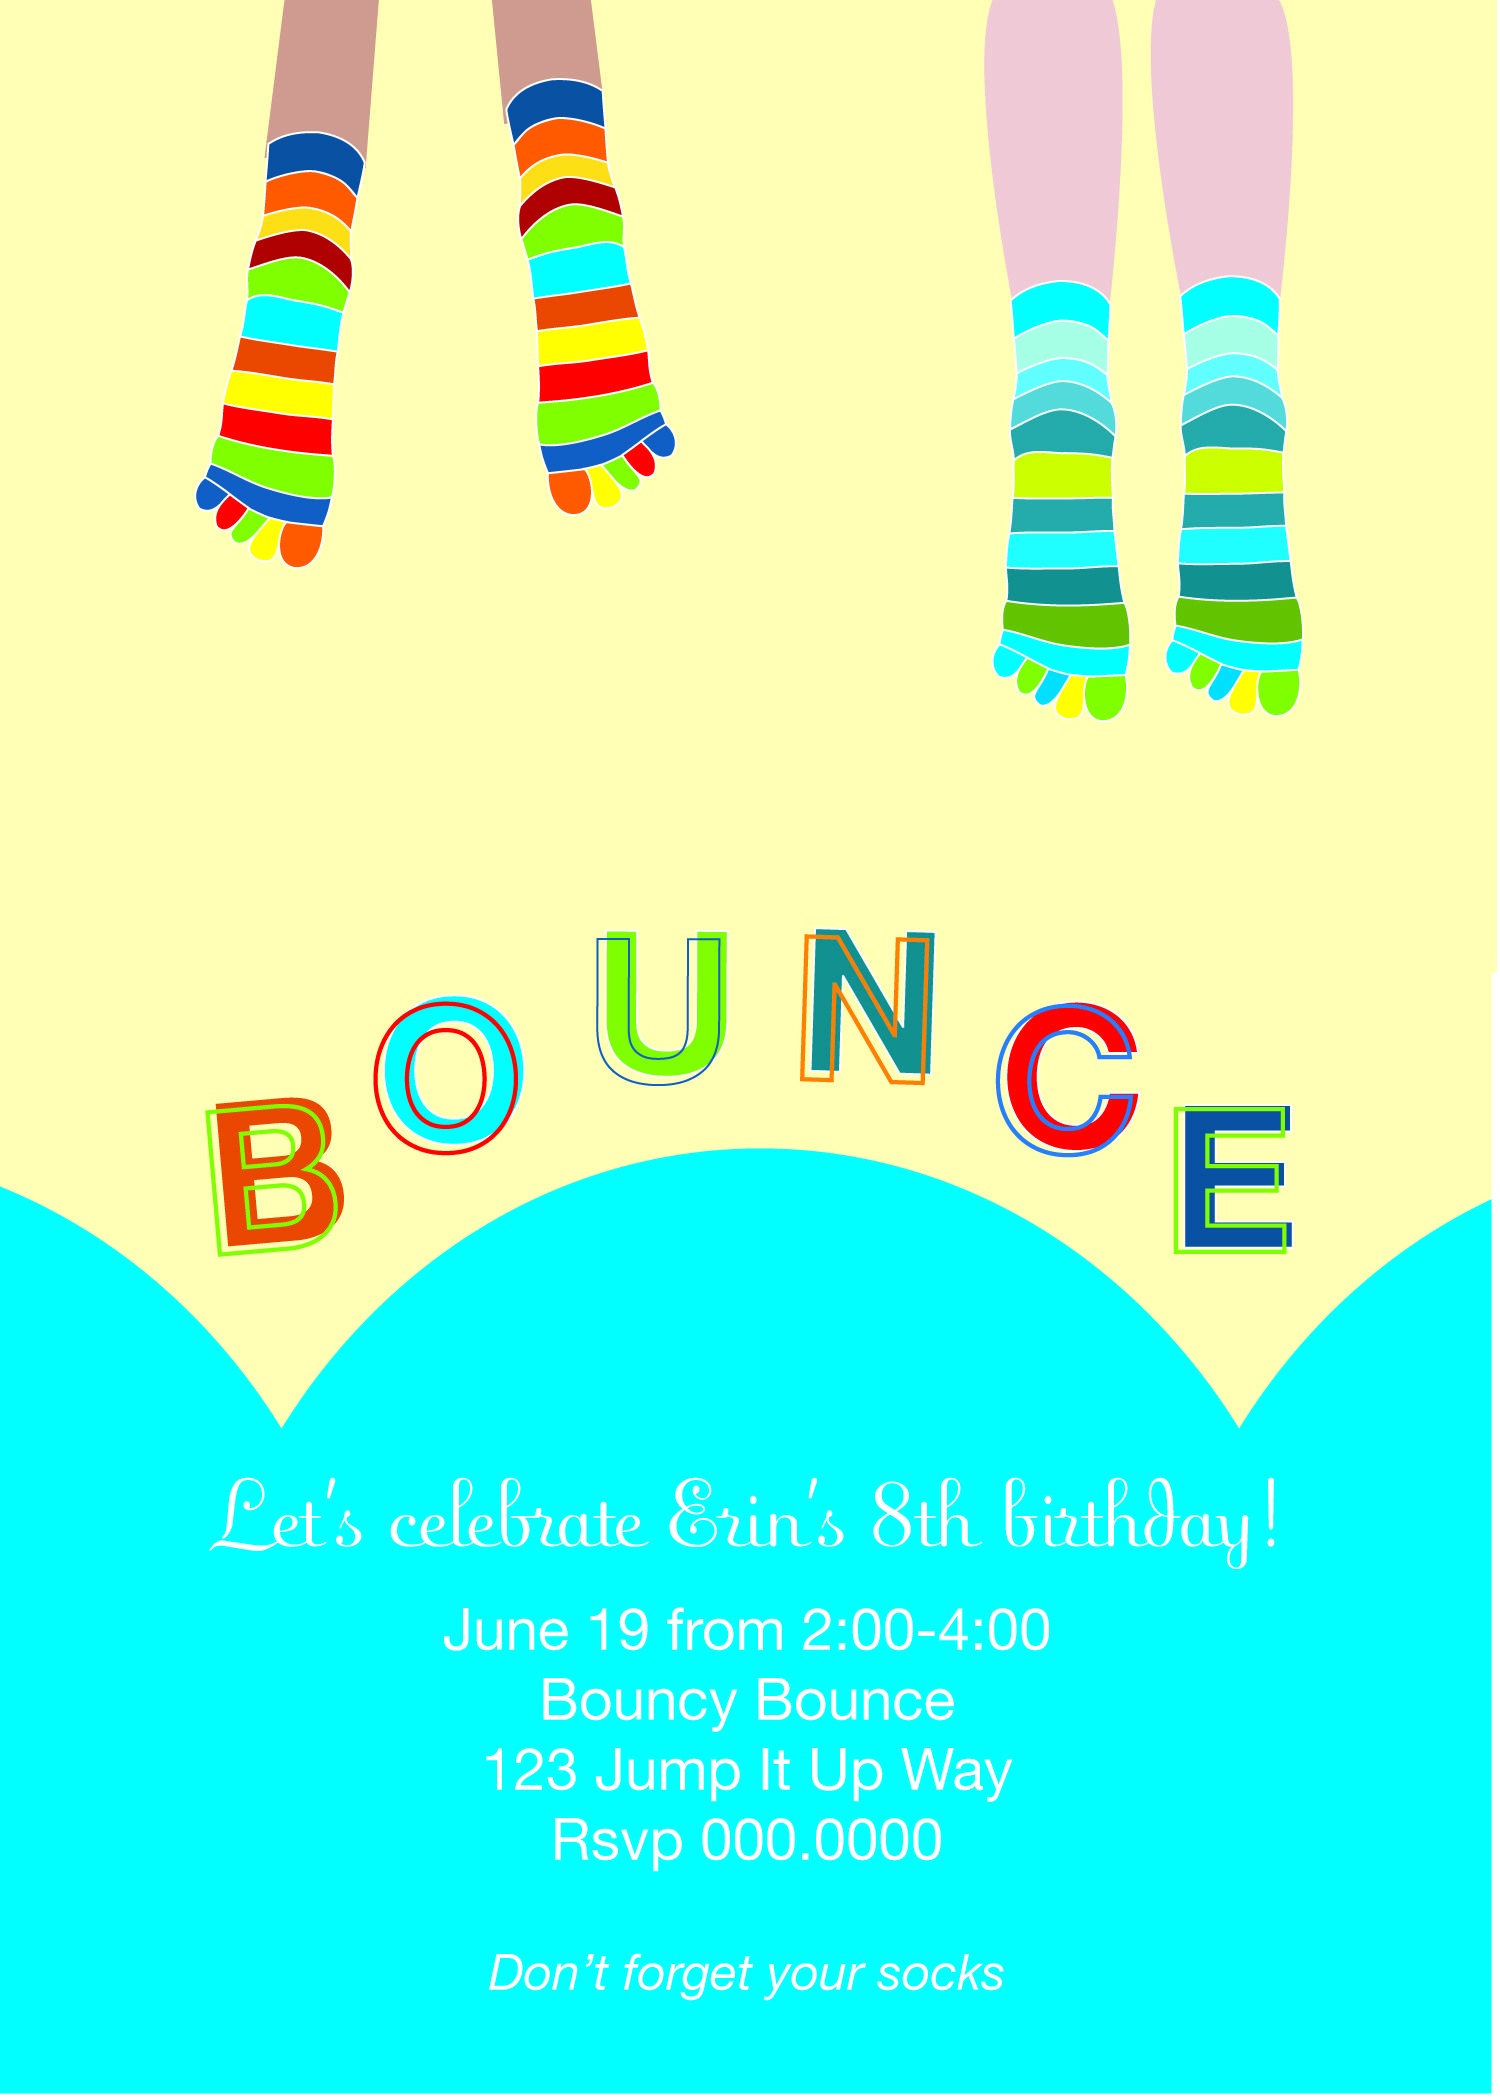 bounce party invitation, #kids stationery | Trampoline party ...